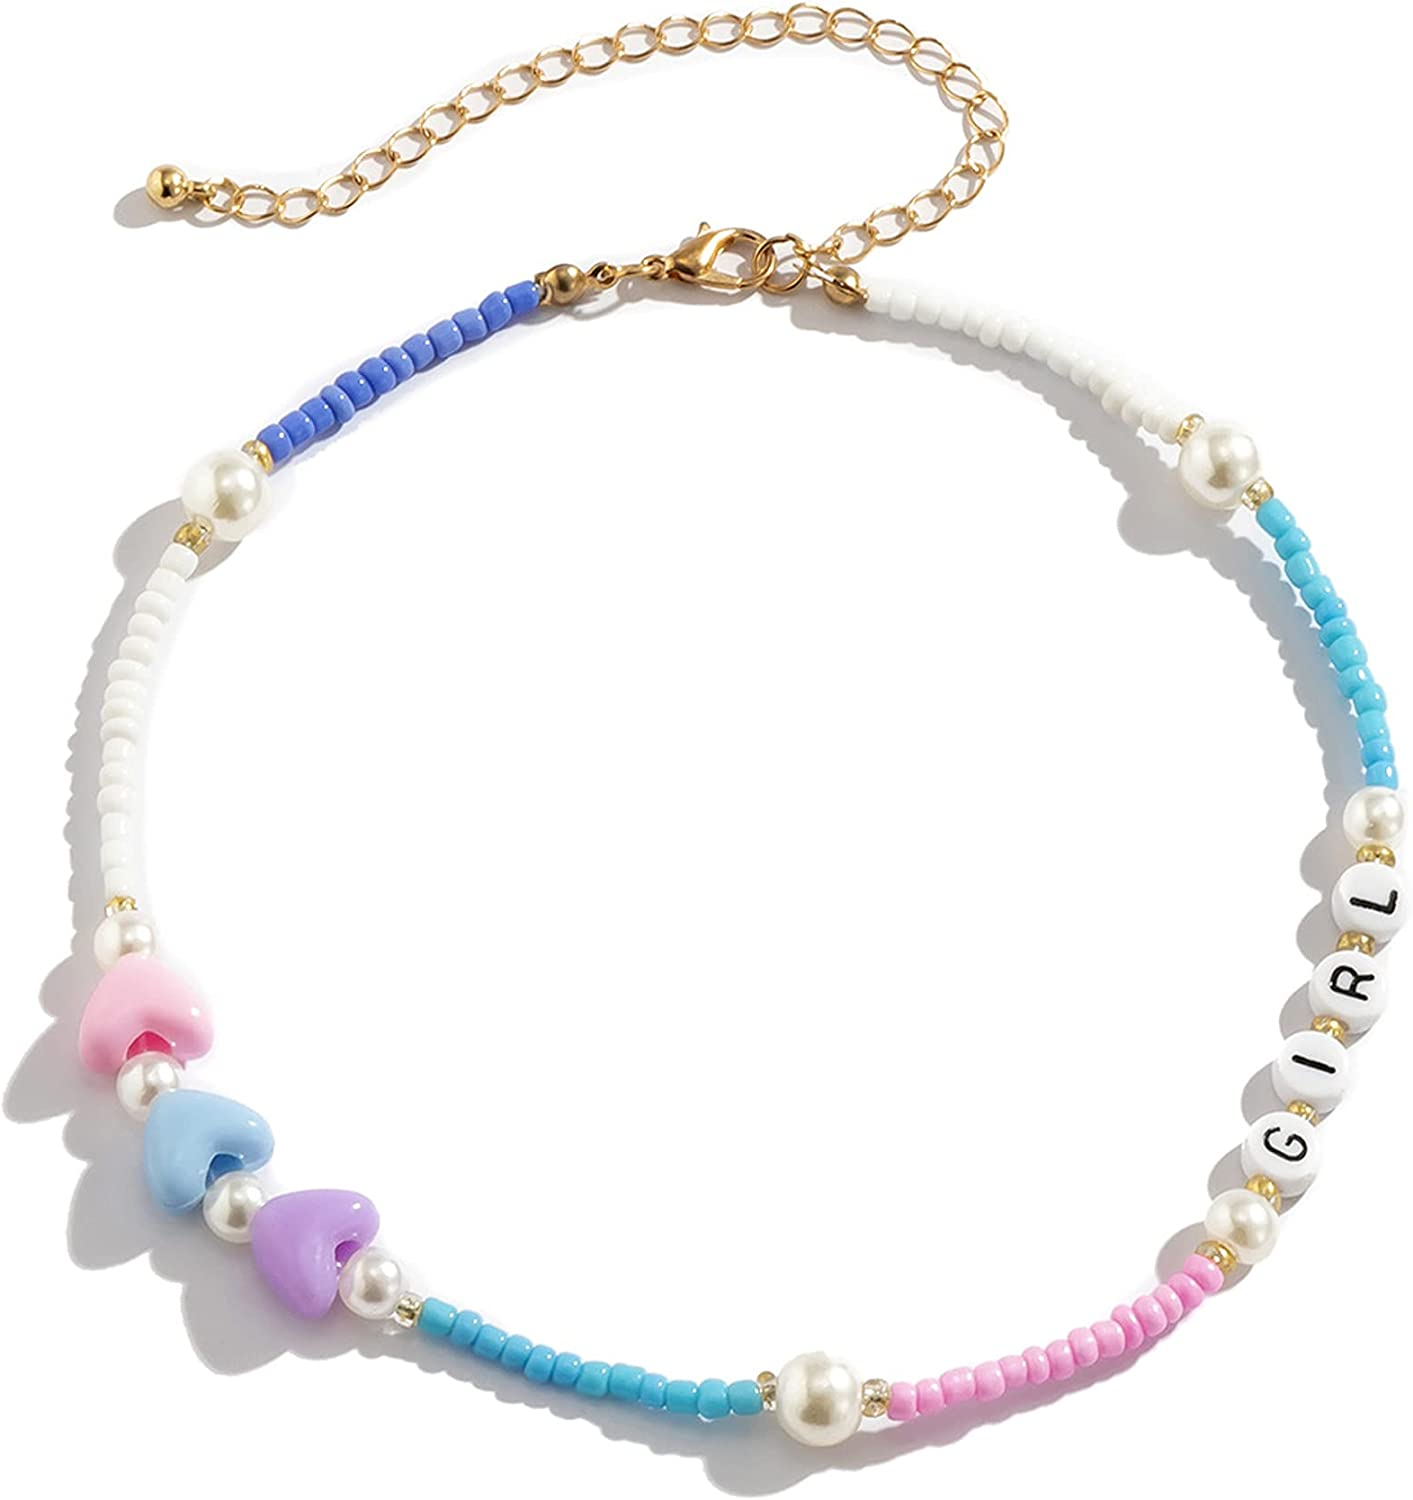 Beaded Choker Necklace for Women y2k Jewelry Aesthetic Colorful Beaded Necklace Boho Cute Beach Necklace Jewelry Gifts for Women Girls